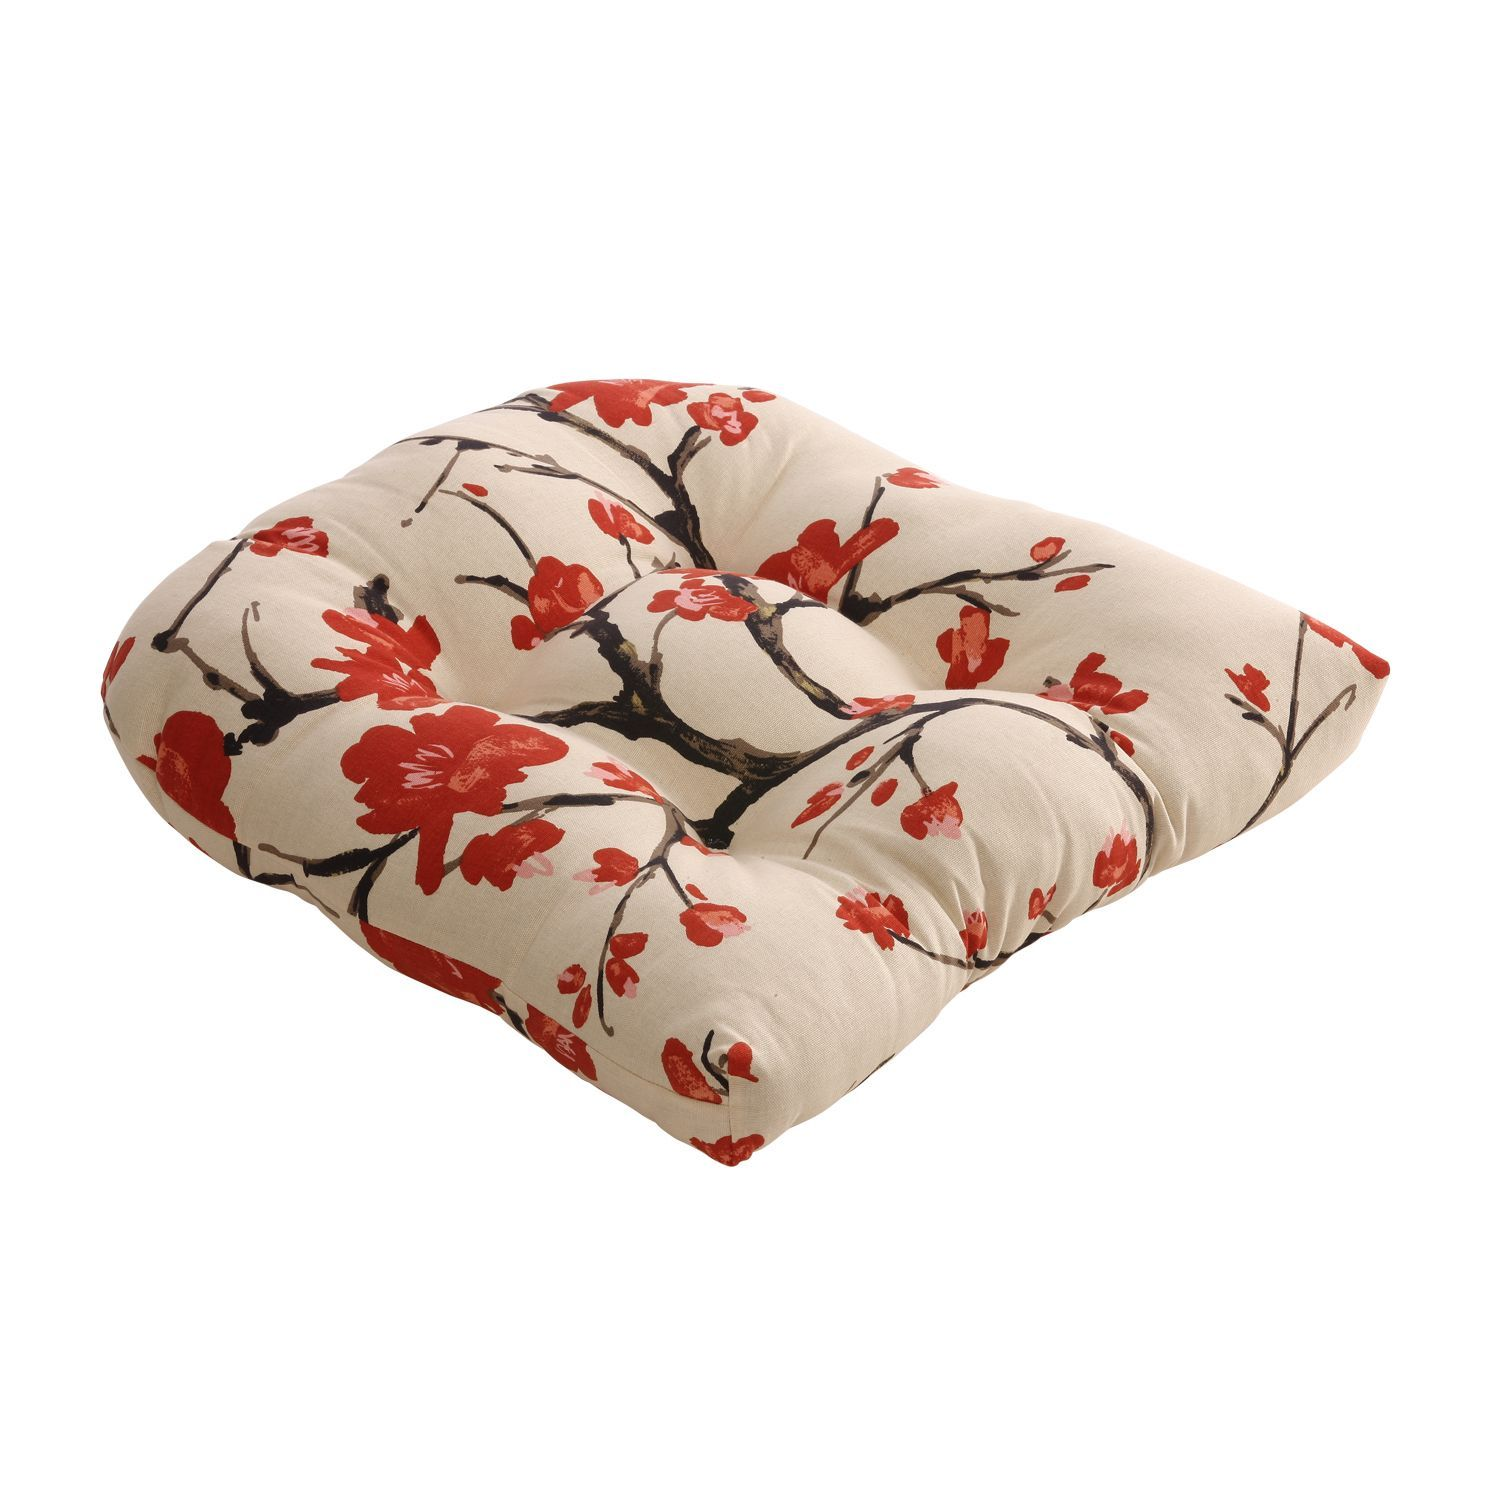 Beigered flowering branch chair cushion by pillow perfect pillows